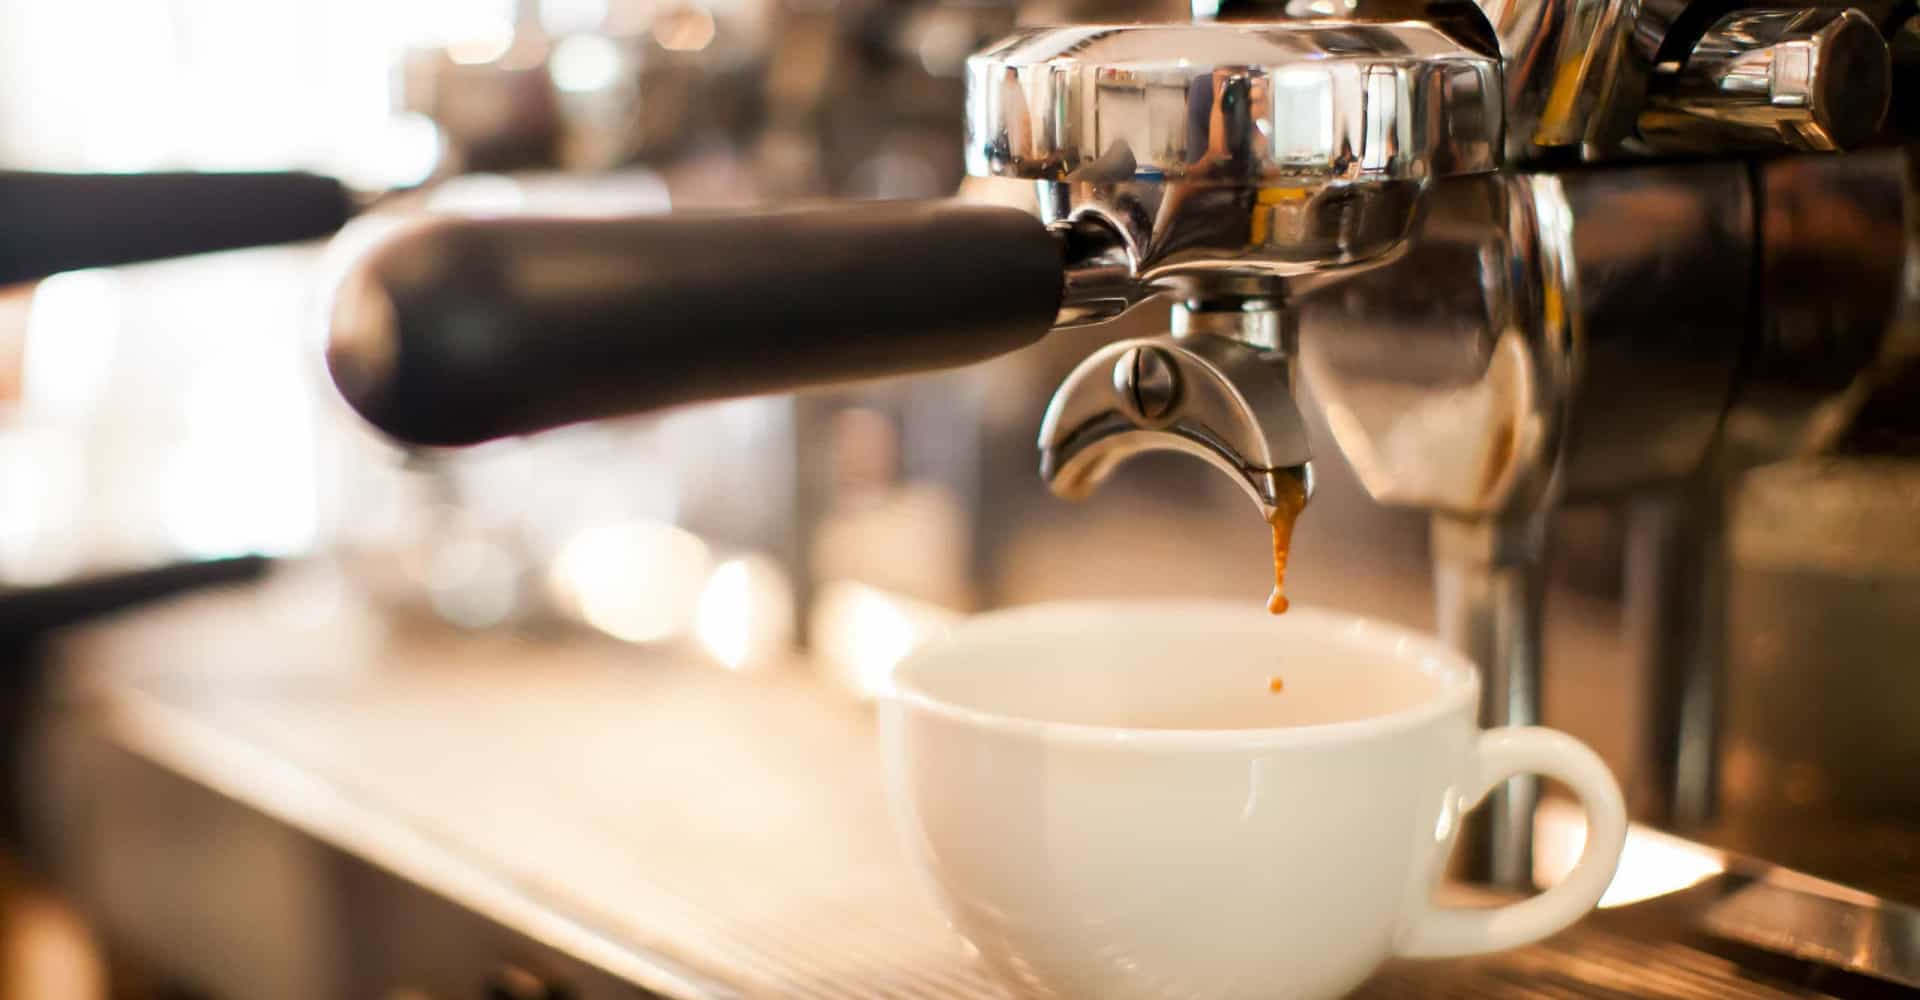 How to set up your own coffee shop